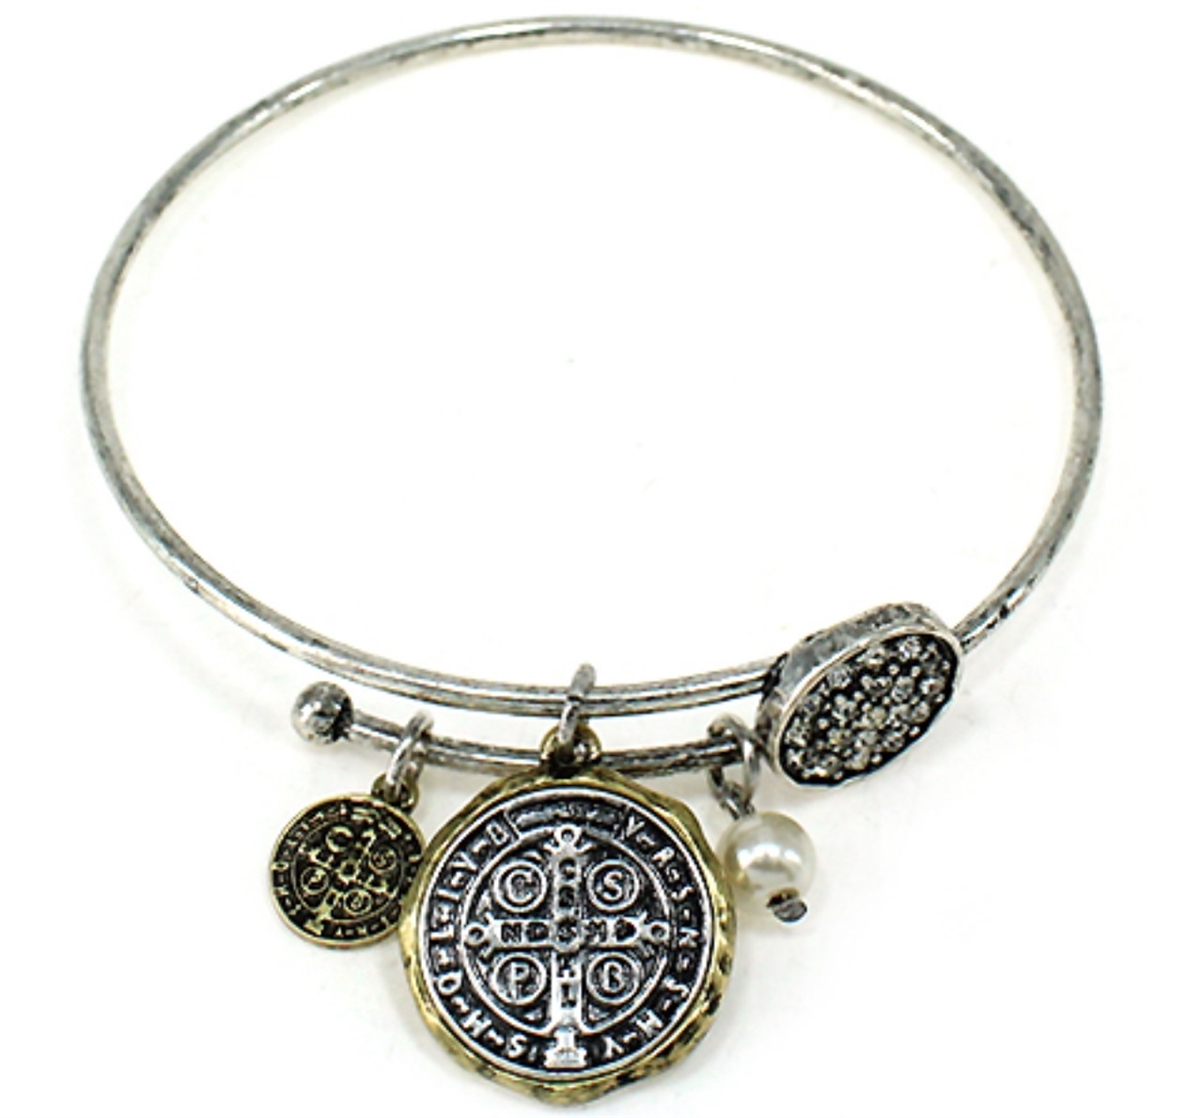 St. Benedict Coin Bracelet bracelet, jewelry, costume jewelry, silver, gold, two strand, bangle, b-699, medjugorje